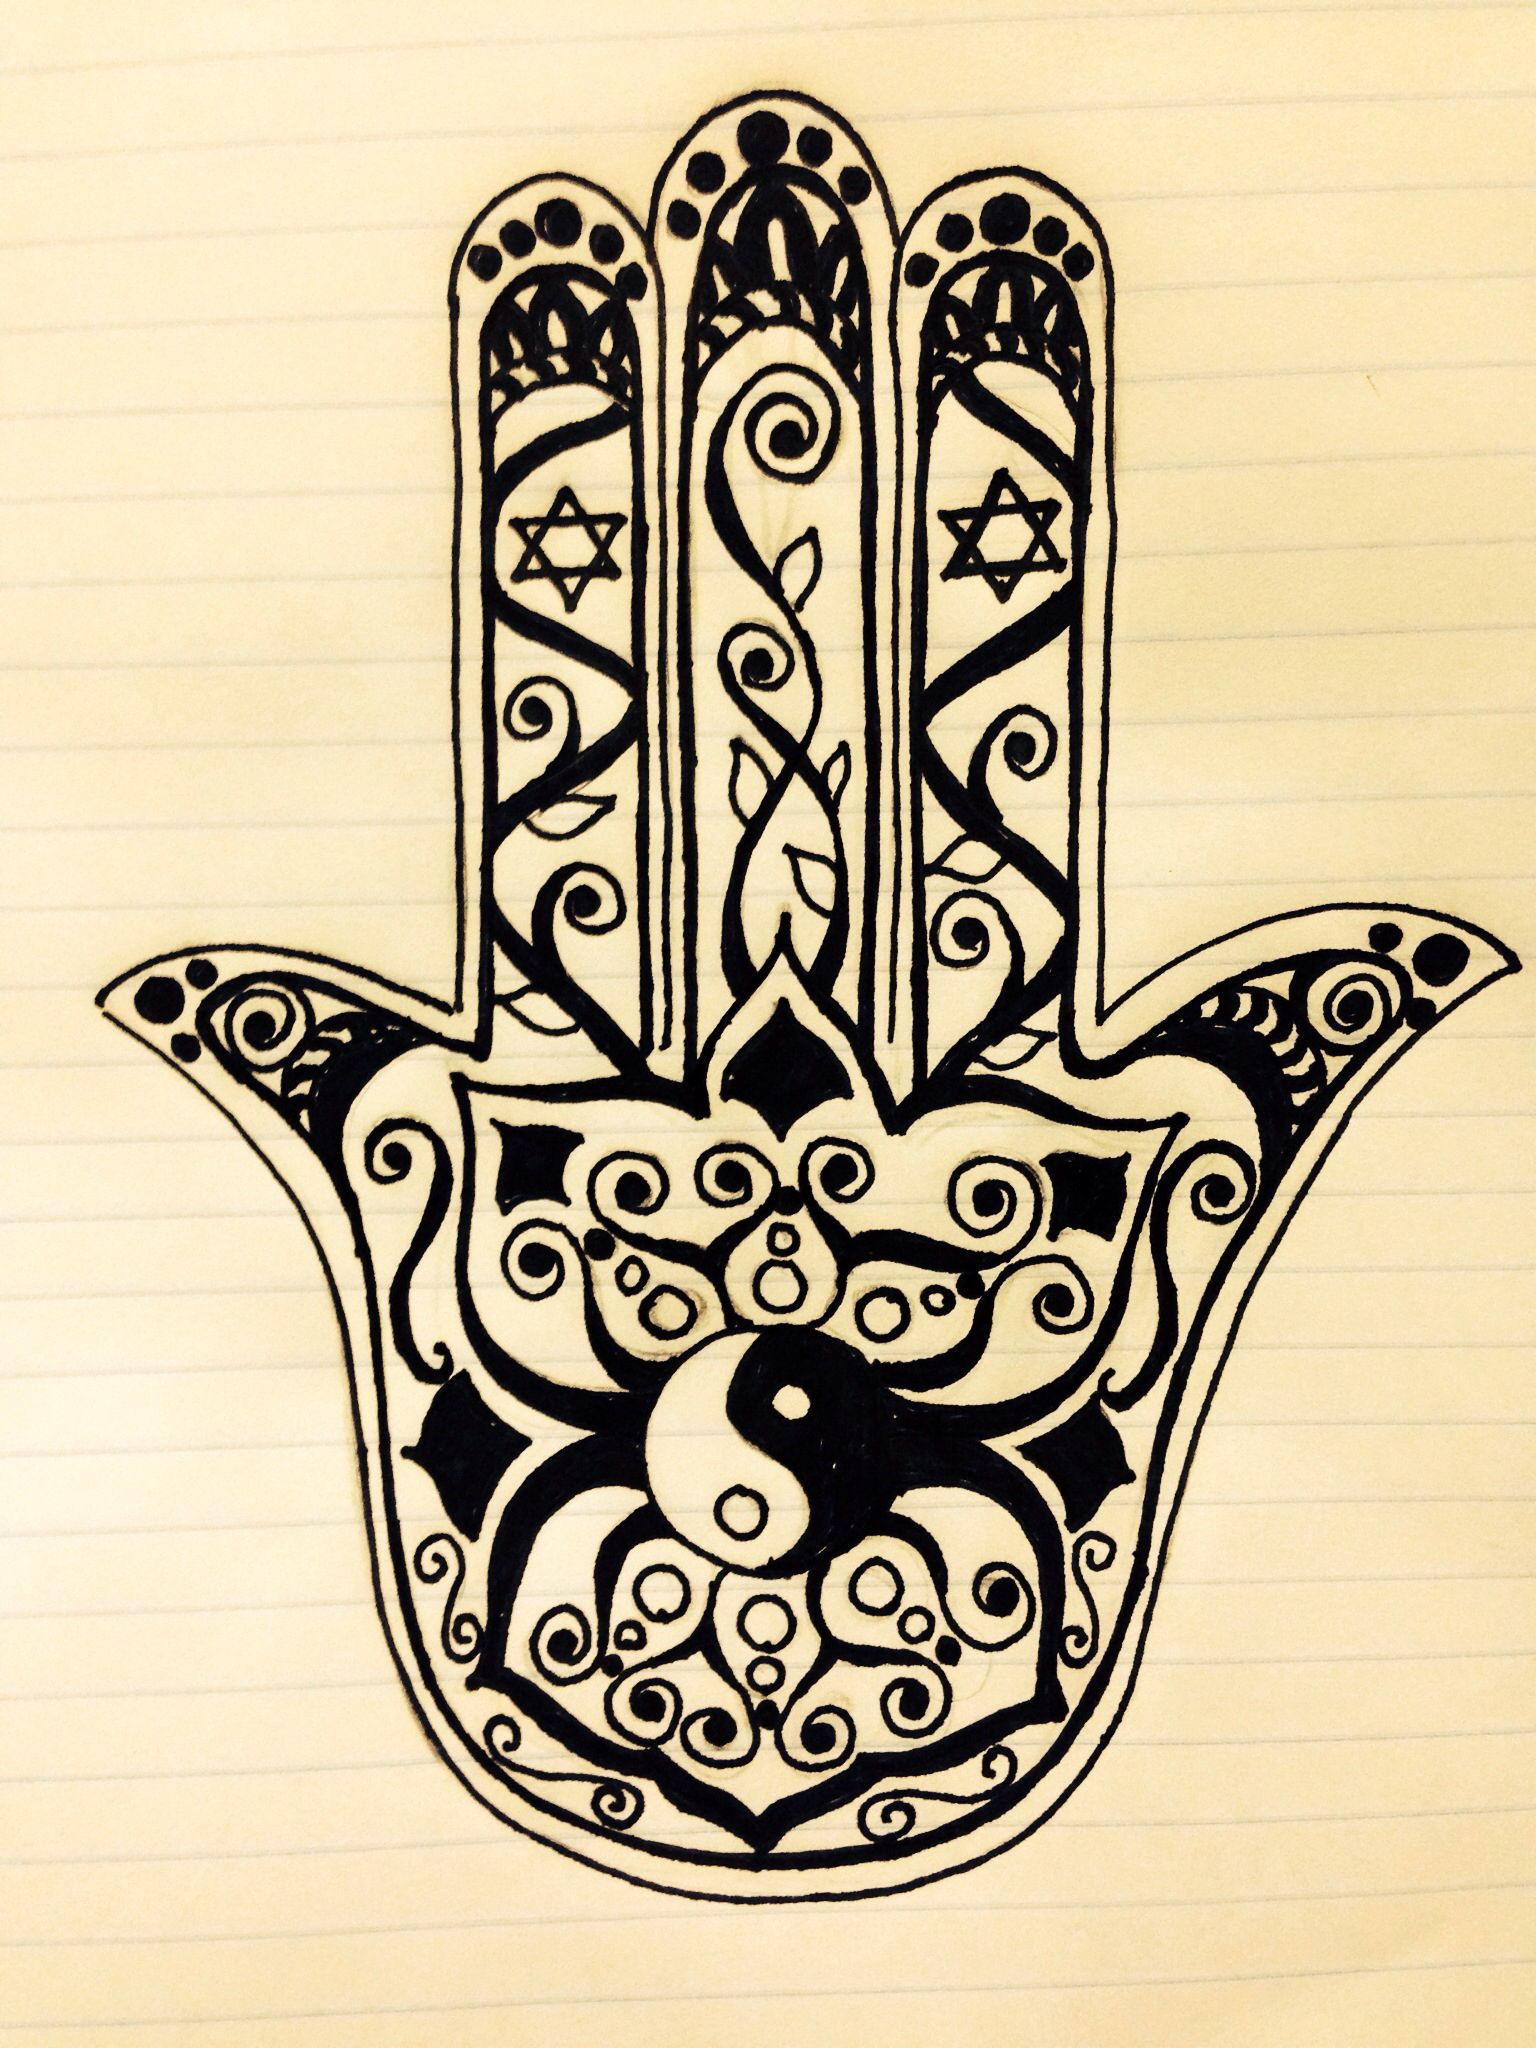 83edc8490 Hamsa tattoo design for a friend with ying-yang and Star of David ...